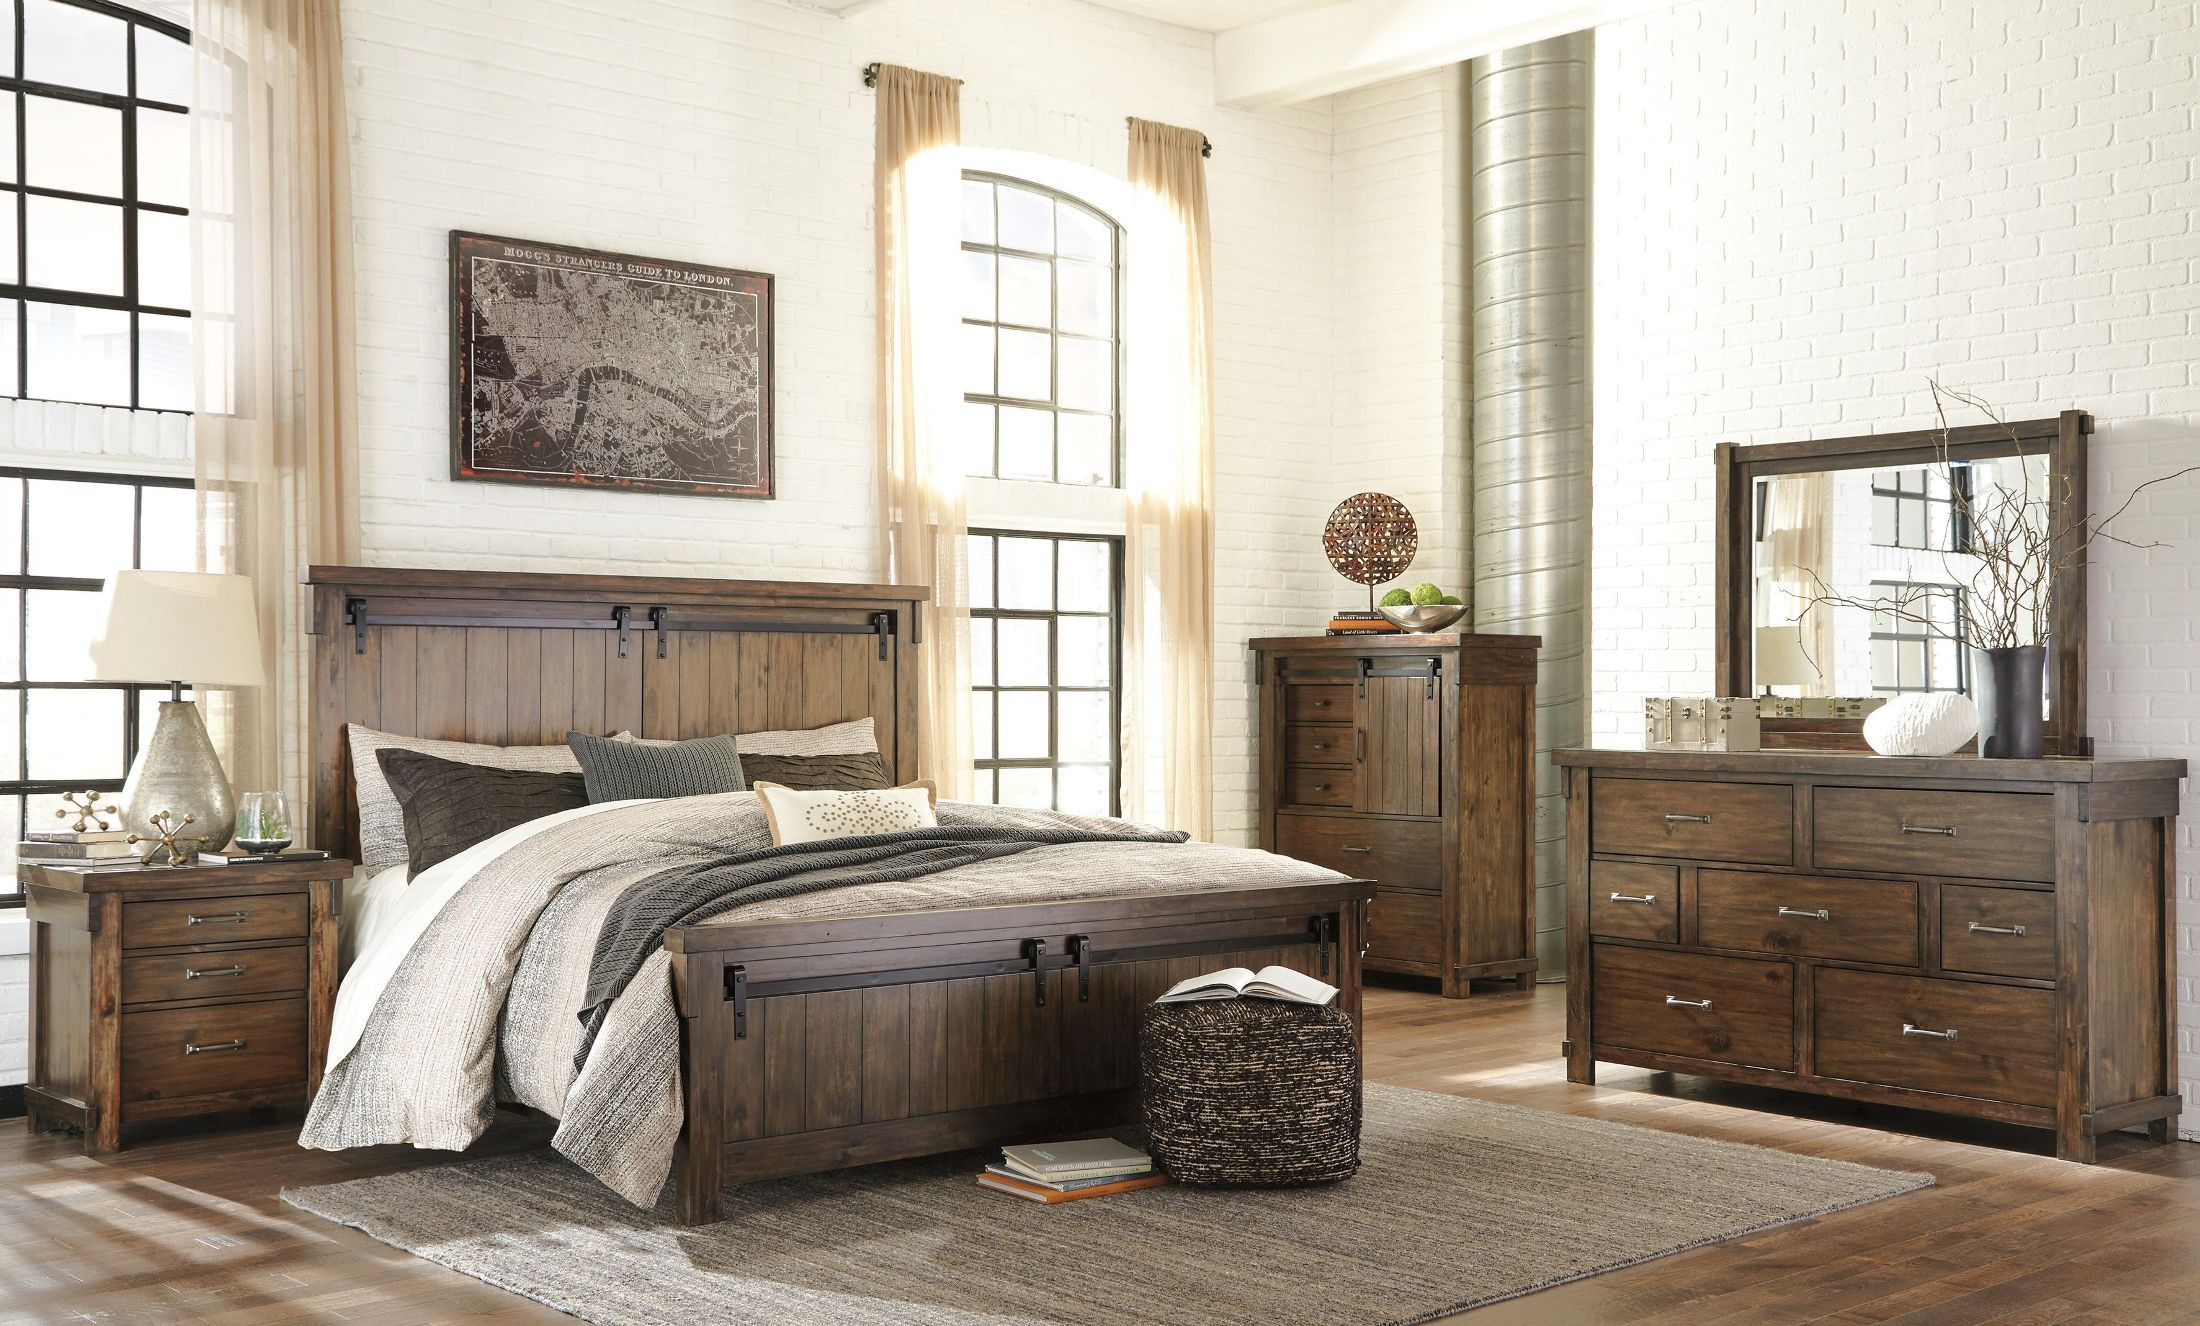 Complete your bedroom with affordable and stylish Bedroom Furniture from Ashley Furniture HomeStore. Enjoy Free Shipping on many items!